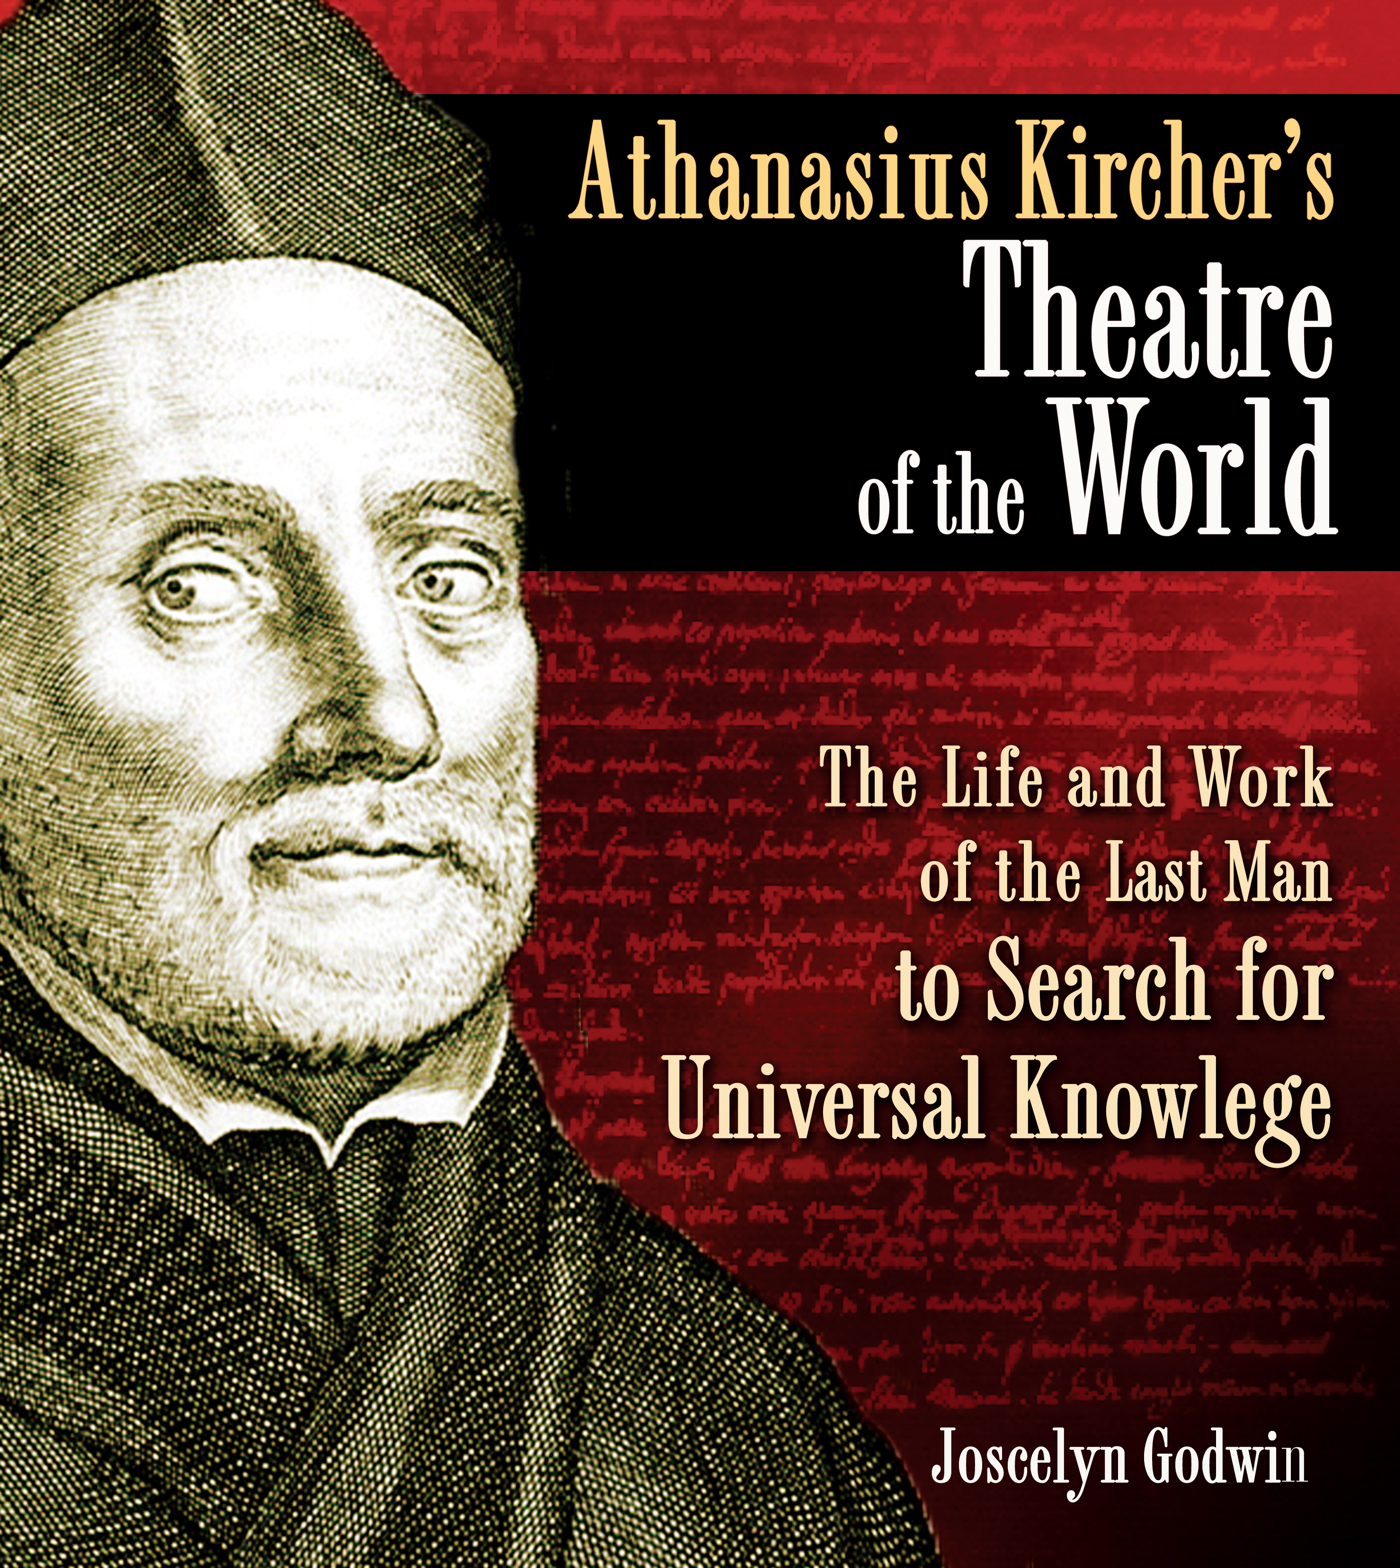 Athanasius-kirchers-theatre-of-the-world-9781594773297_hr